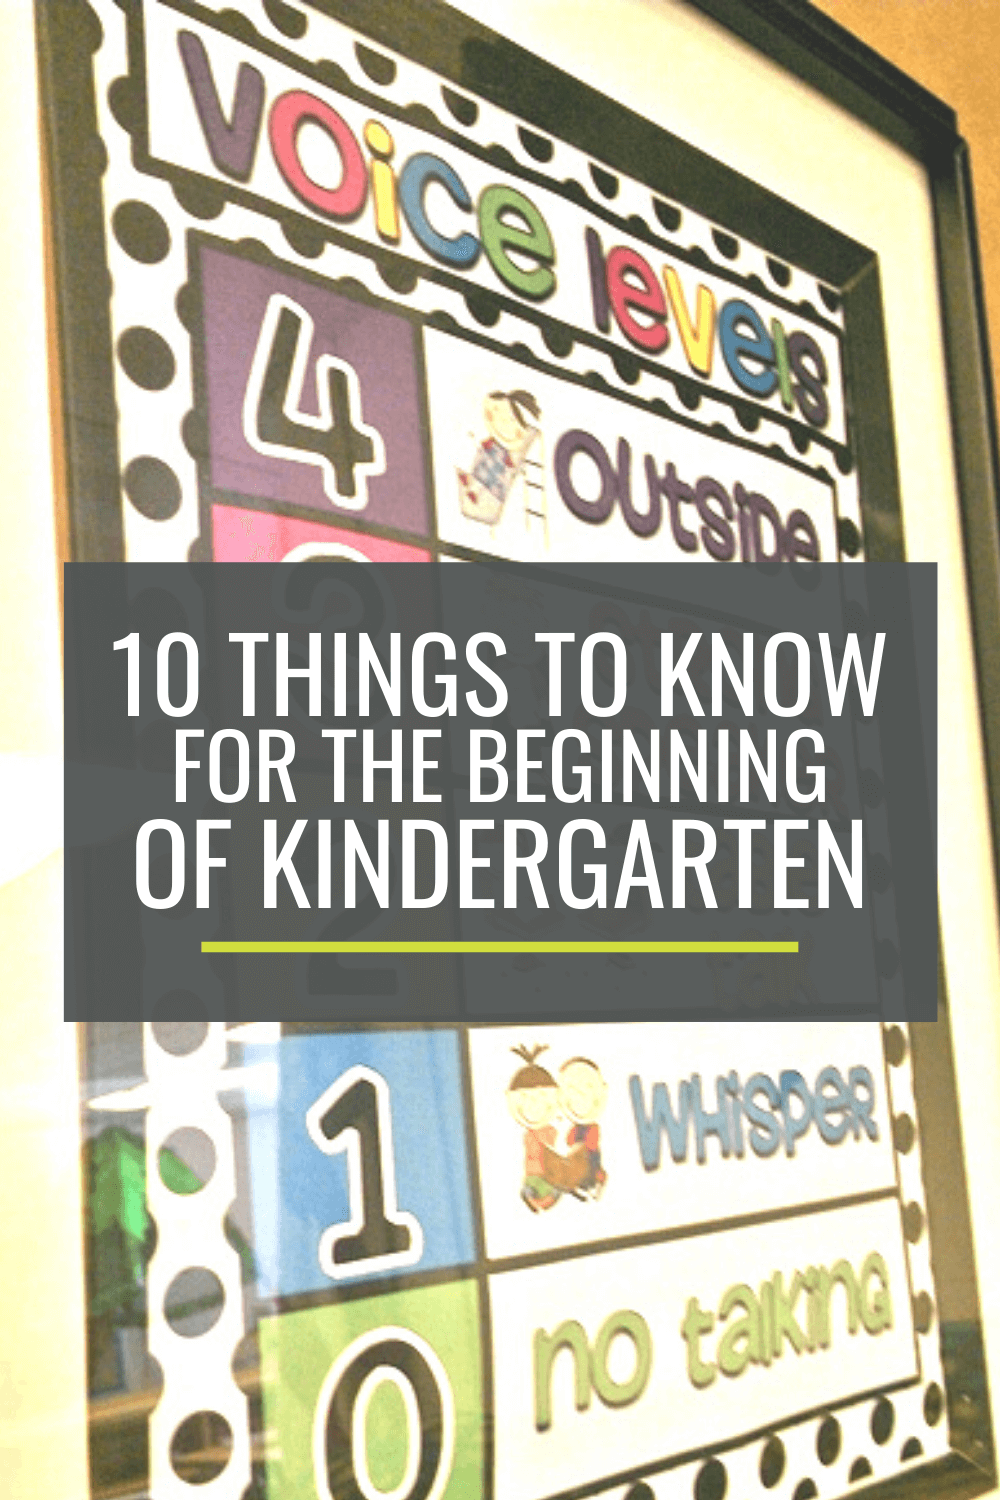 10 Things to Know for the Beginning of Kindergarten